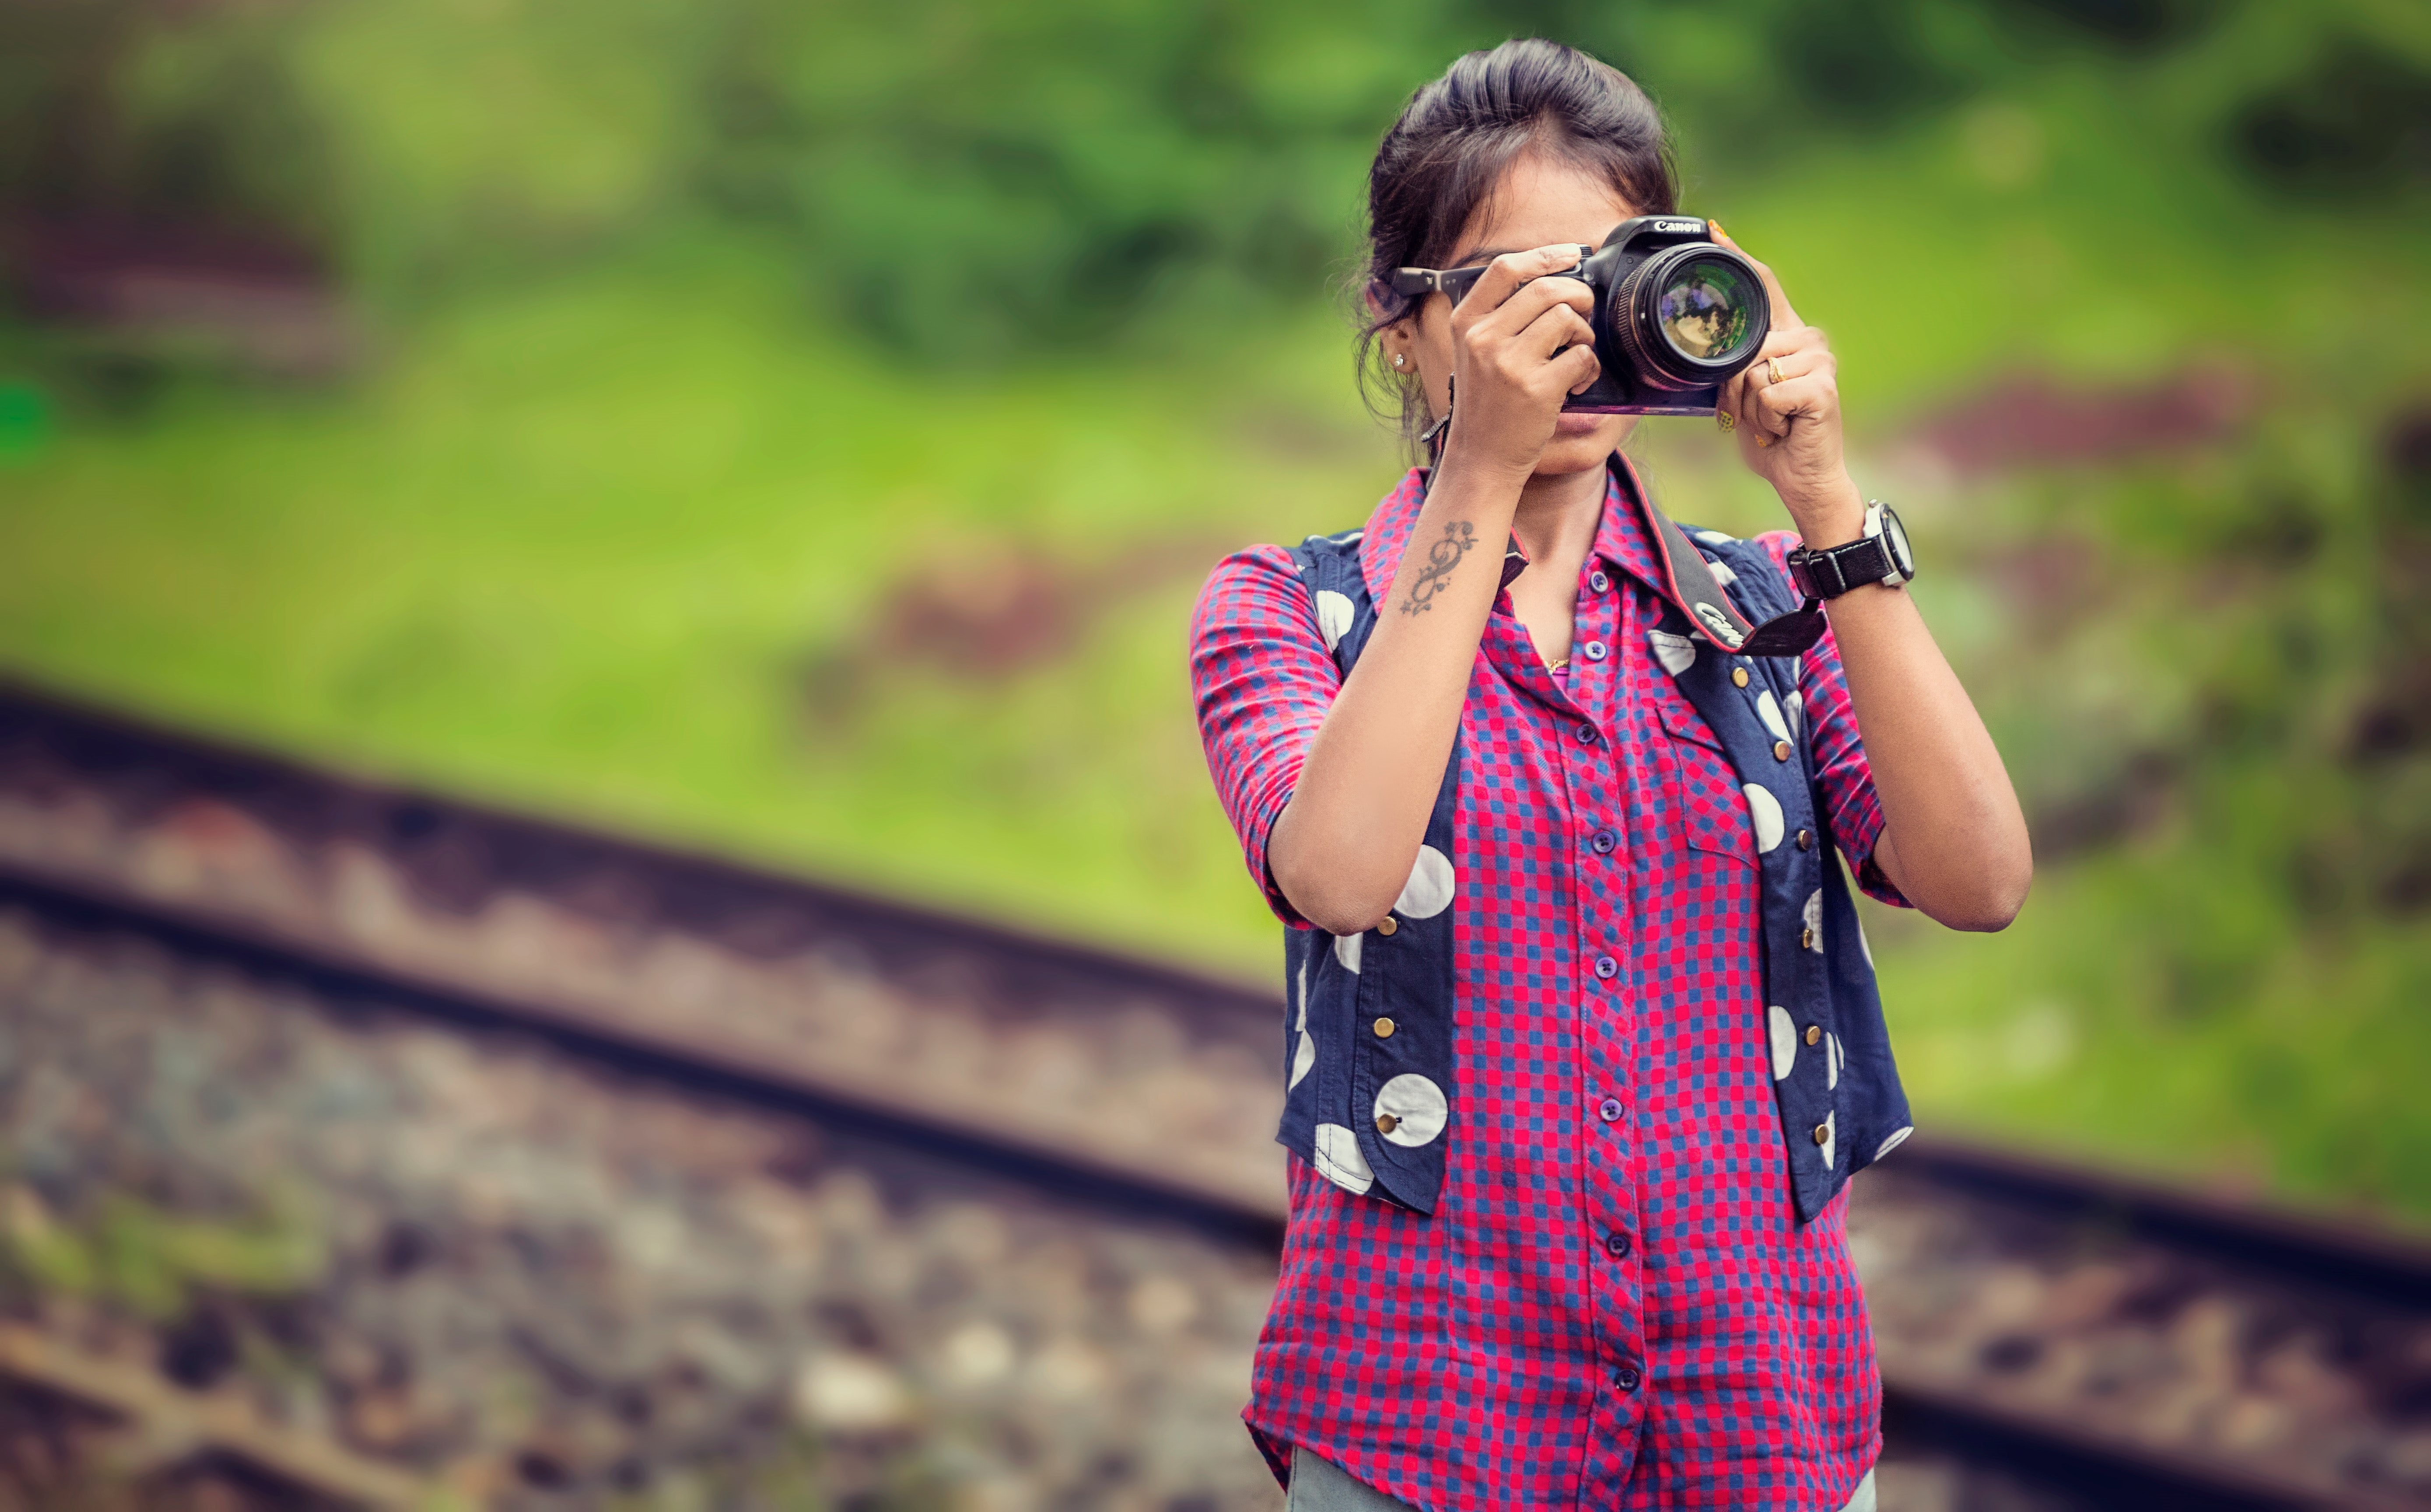 woman taking photo in selective focus photography